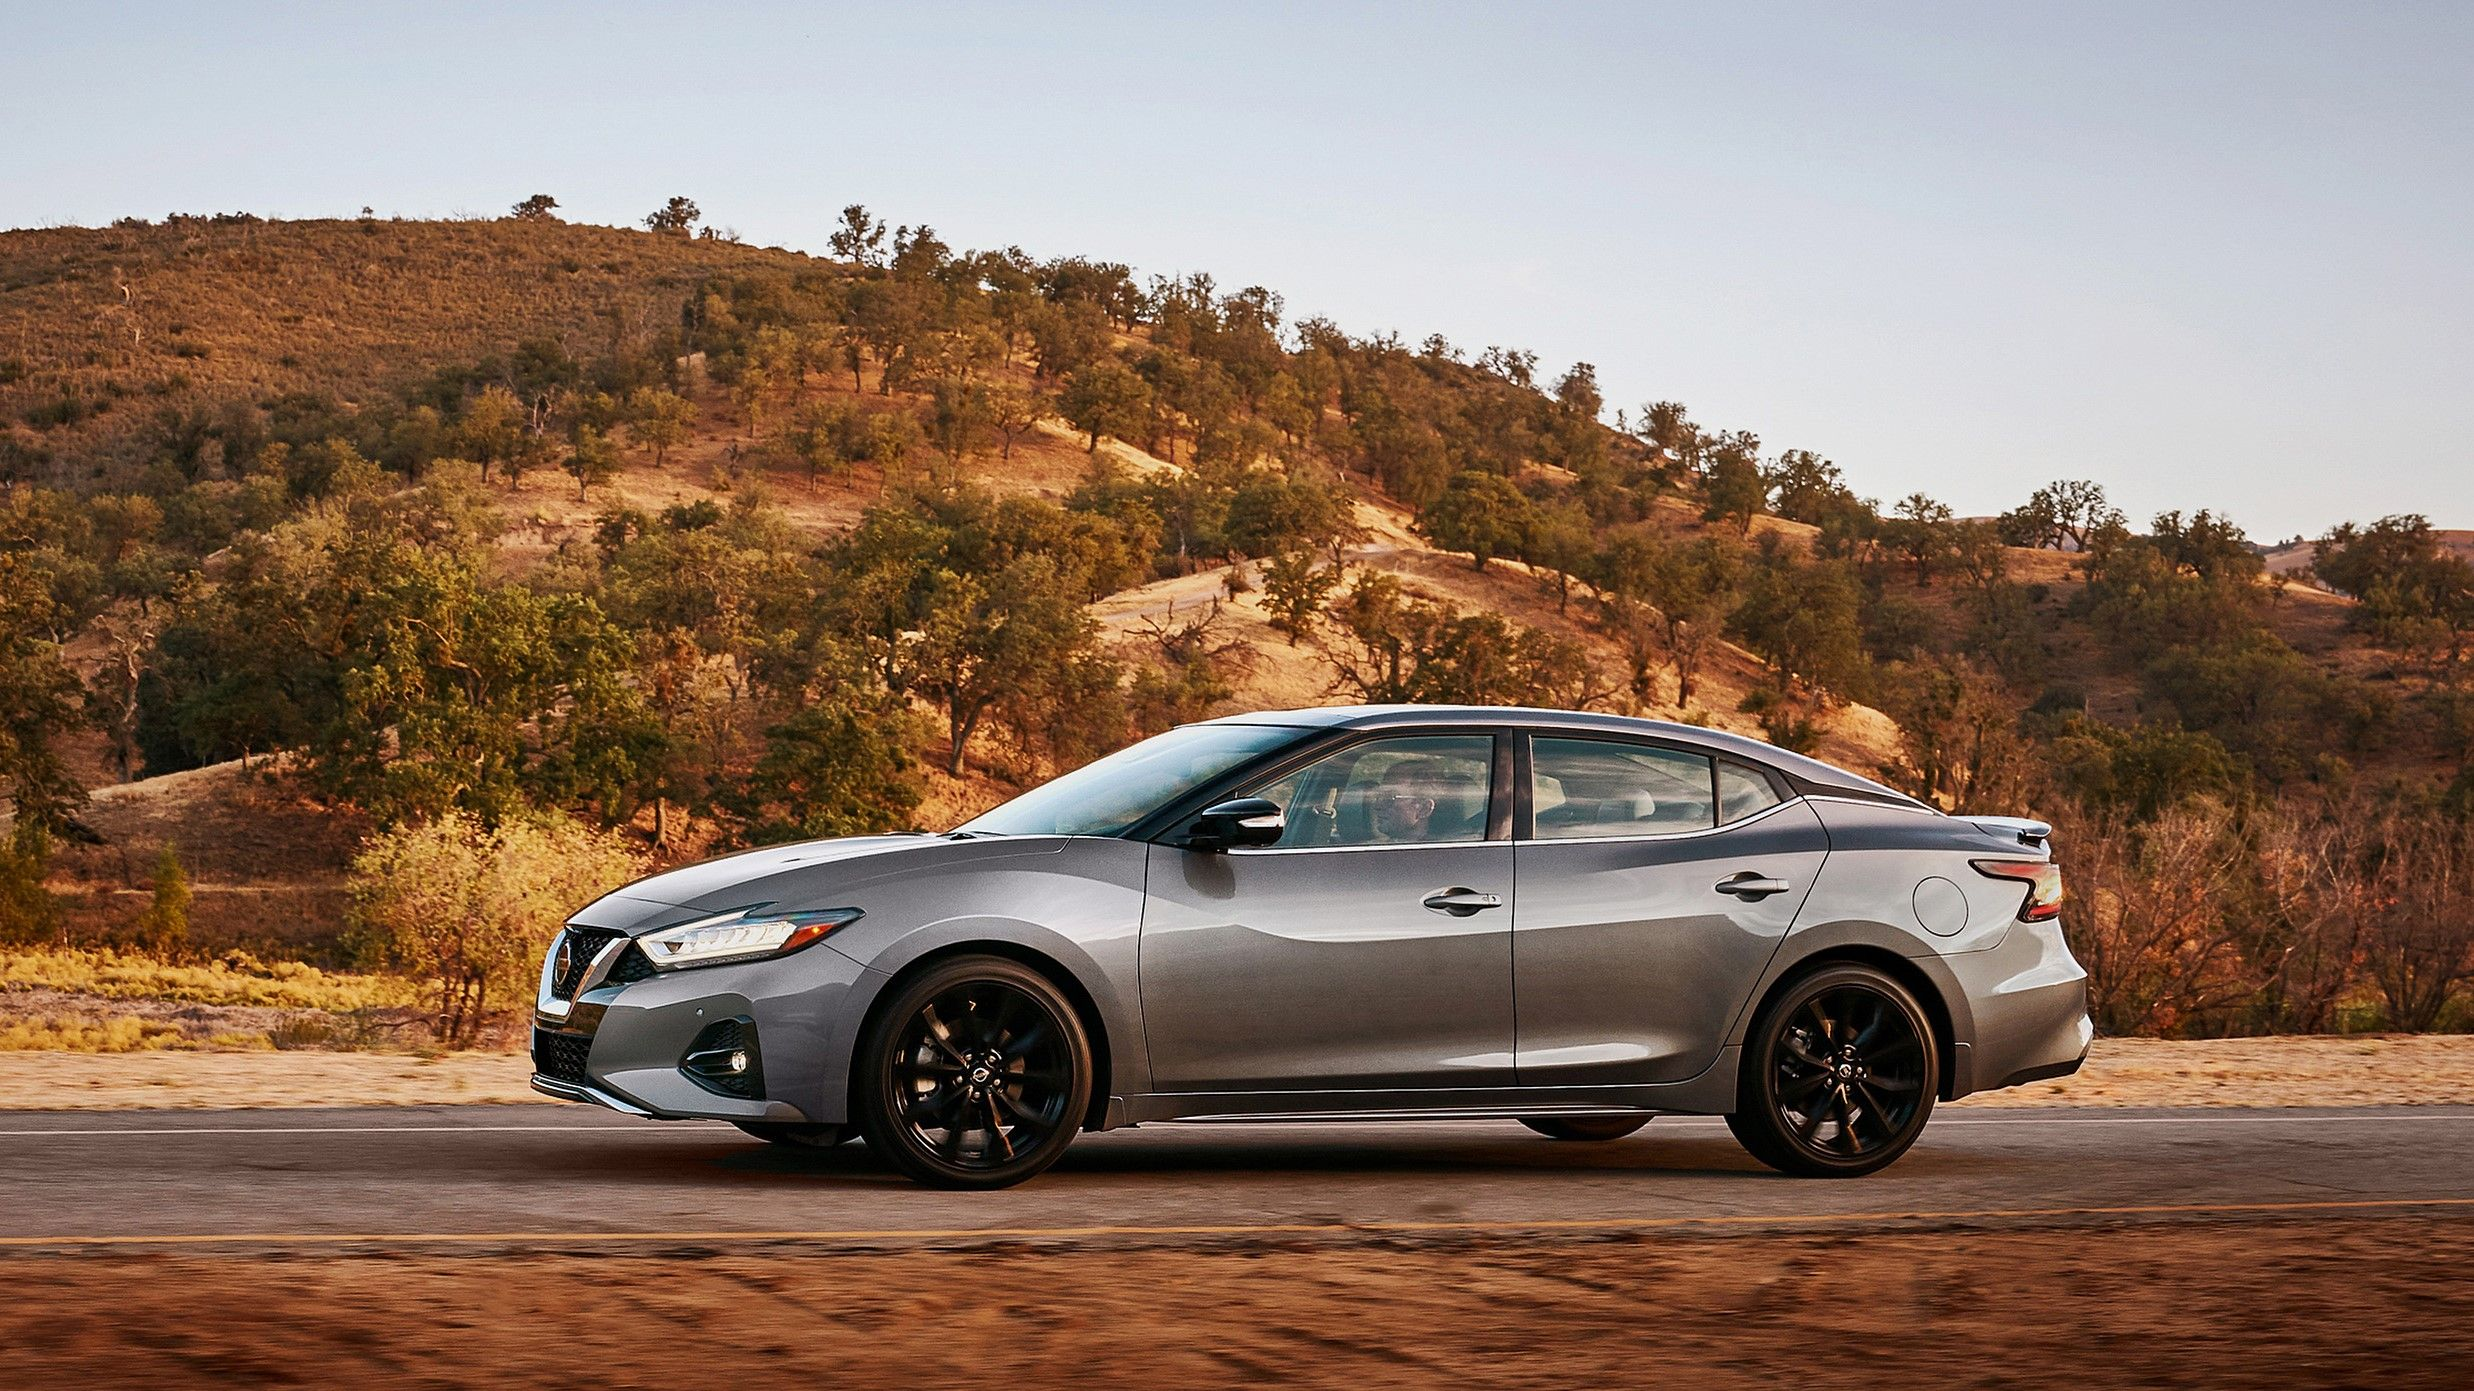 2021 Nissan Maxima Review Release Date Trims Performance Mpg Interior And Rivals Comparison